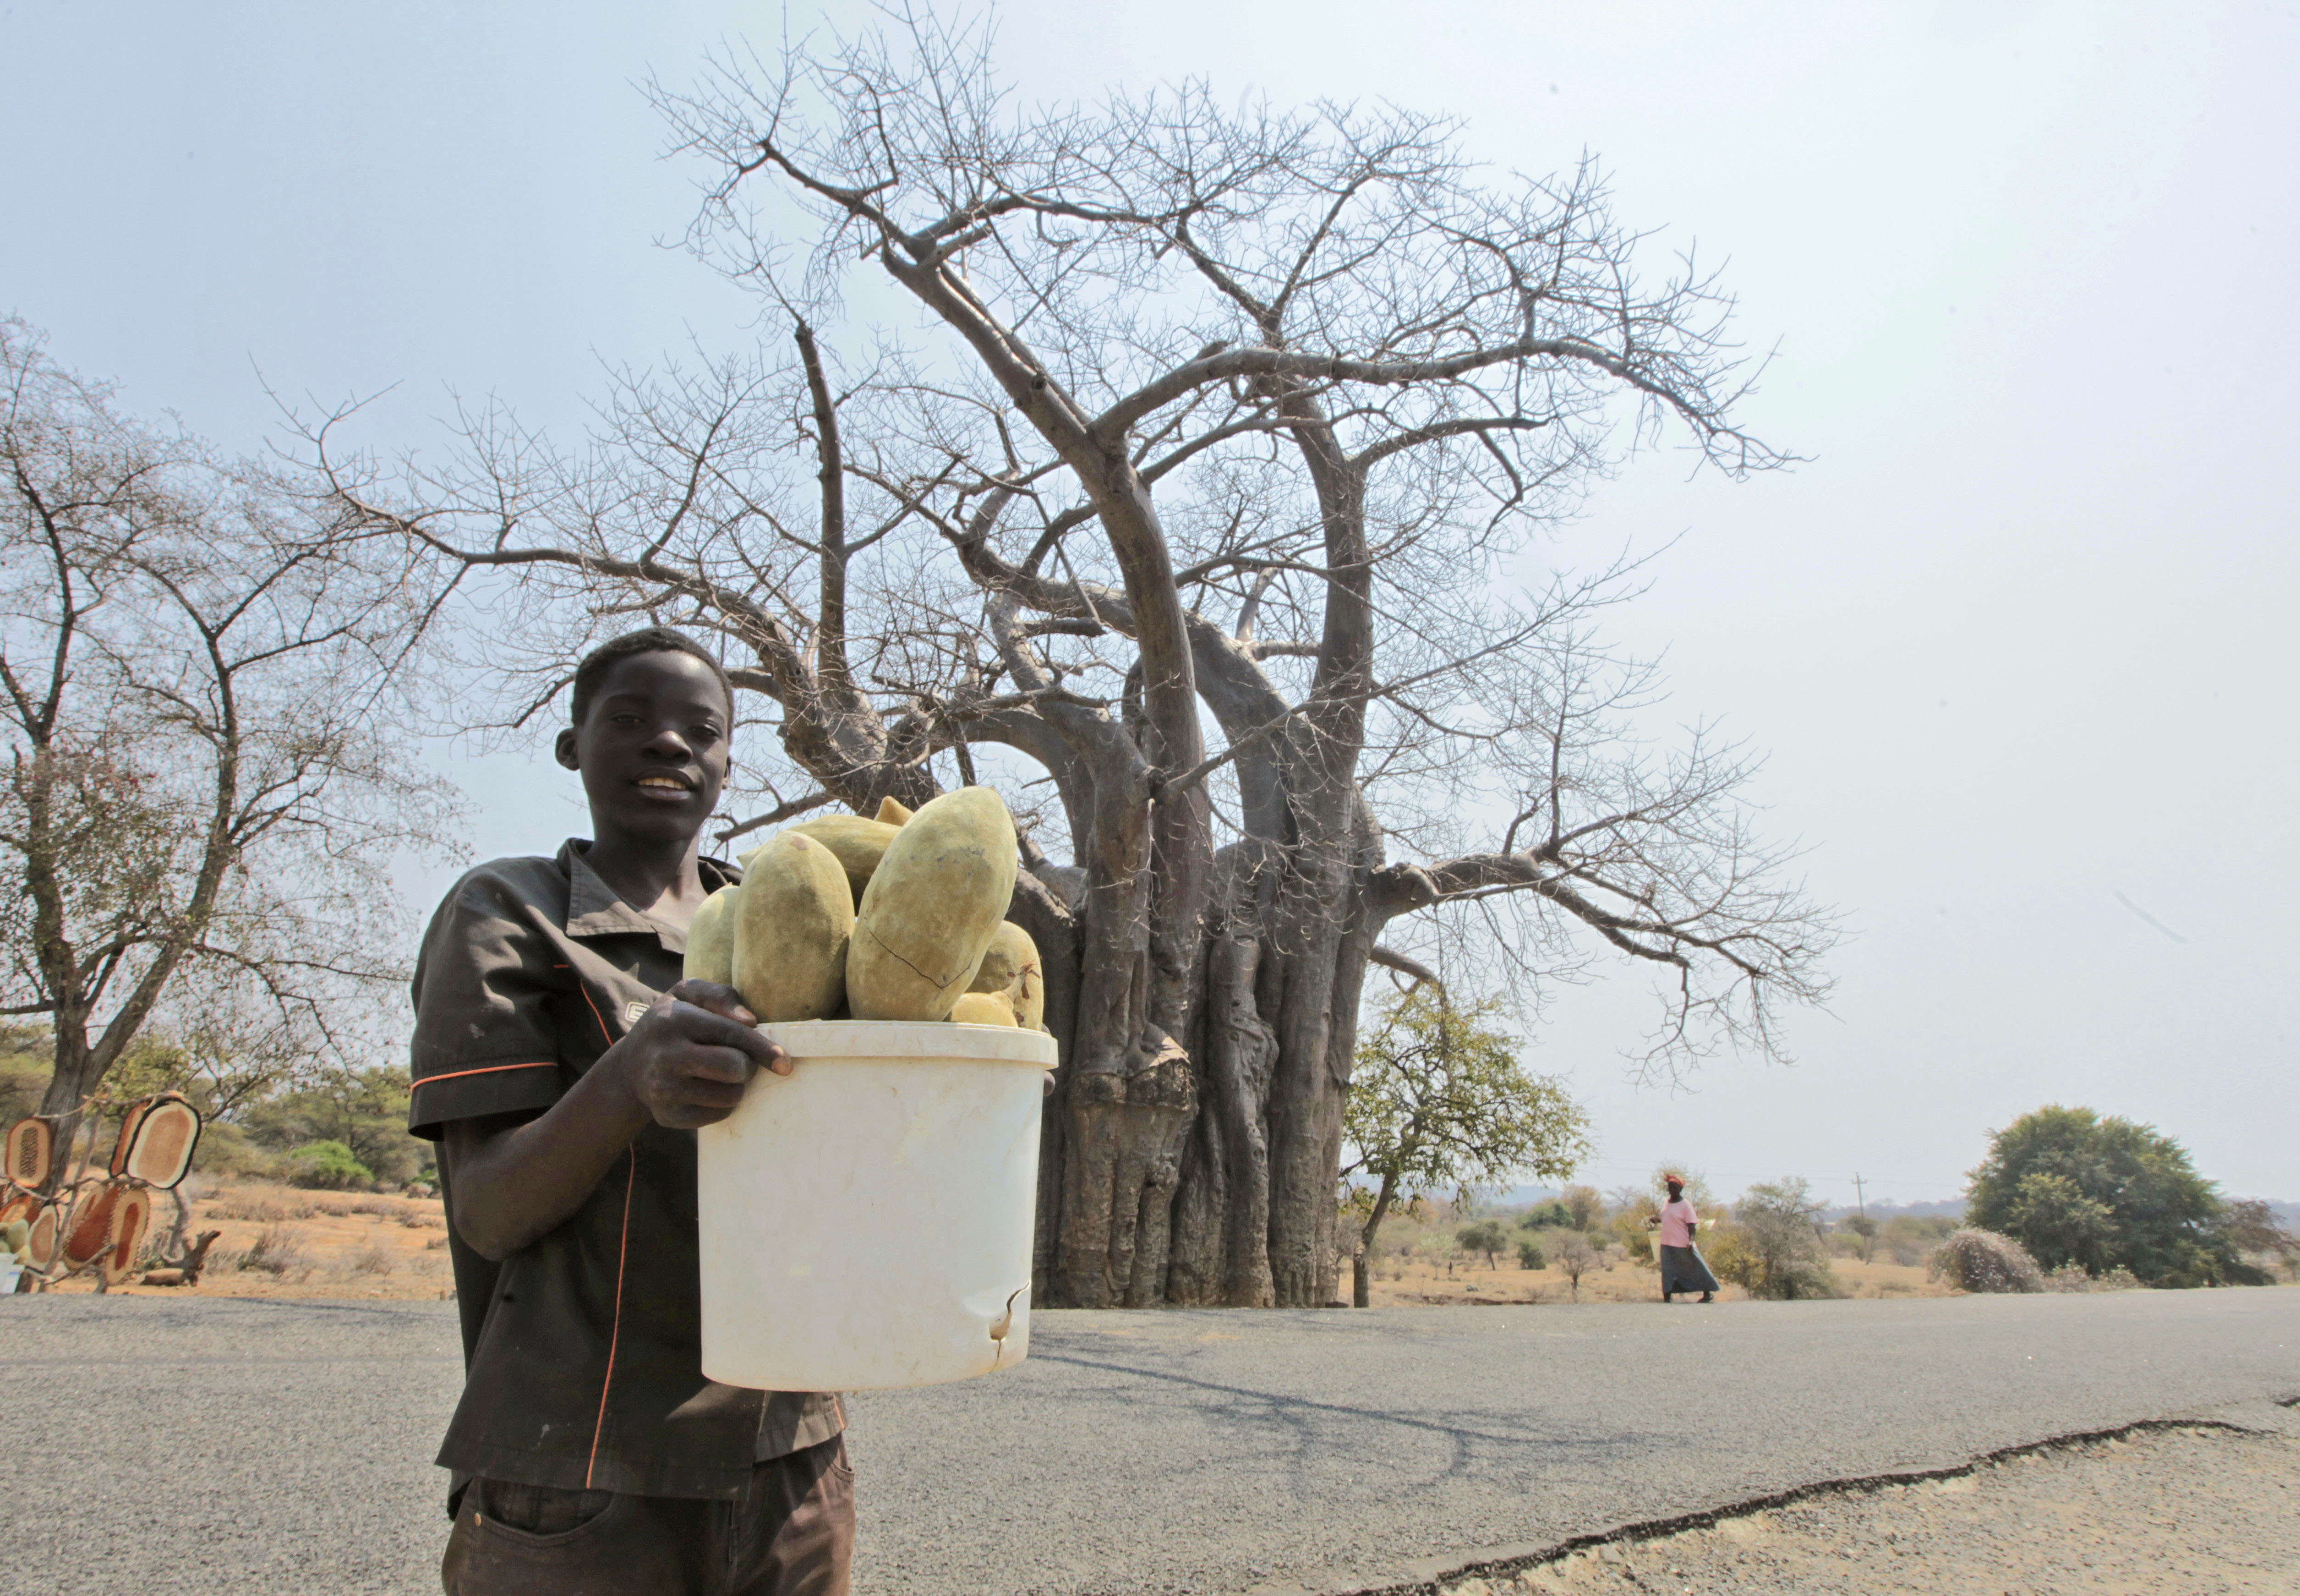 A child with a bucket of baobab fruit in Chimanimani